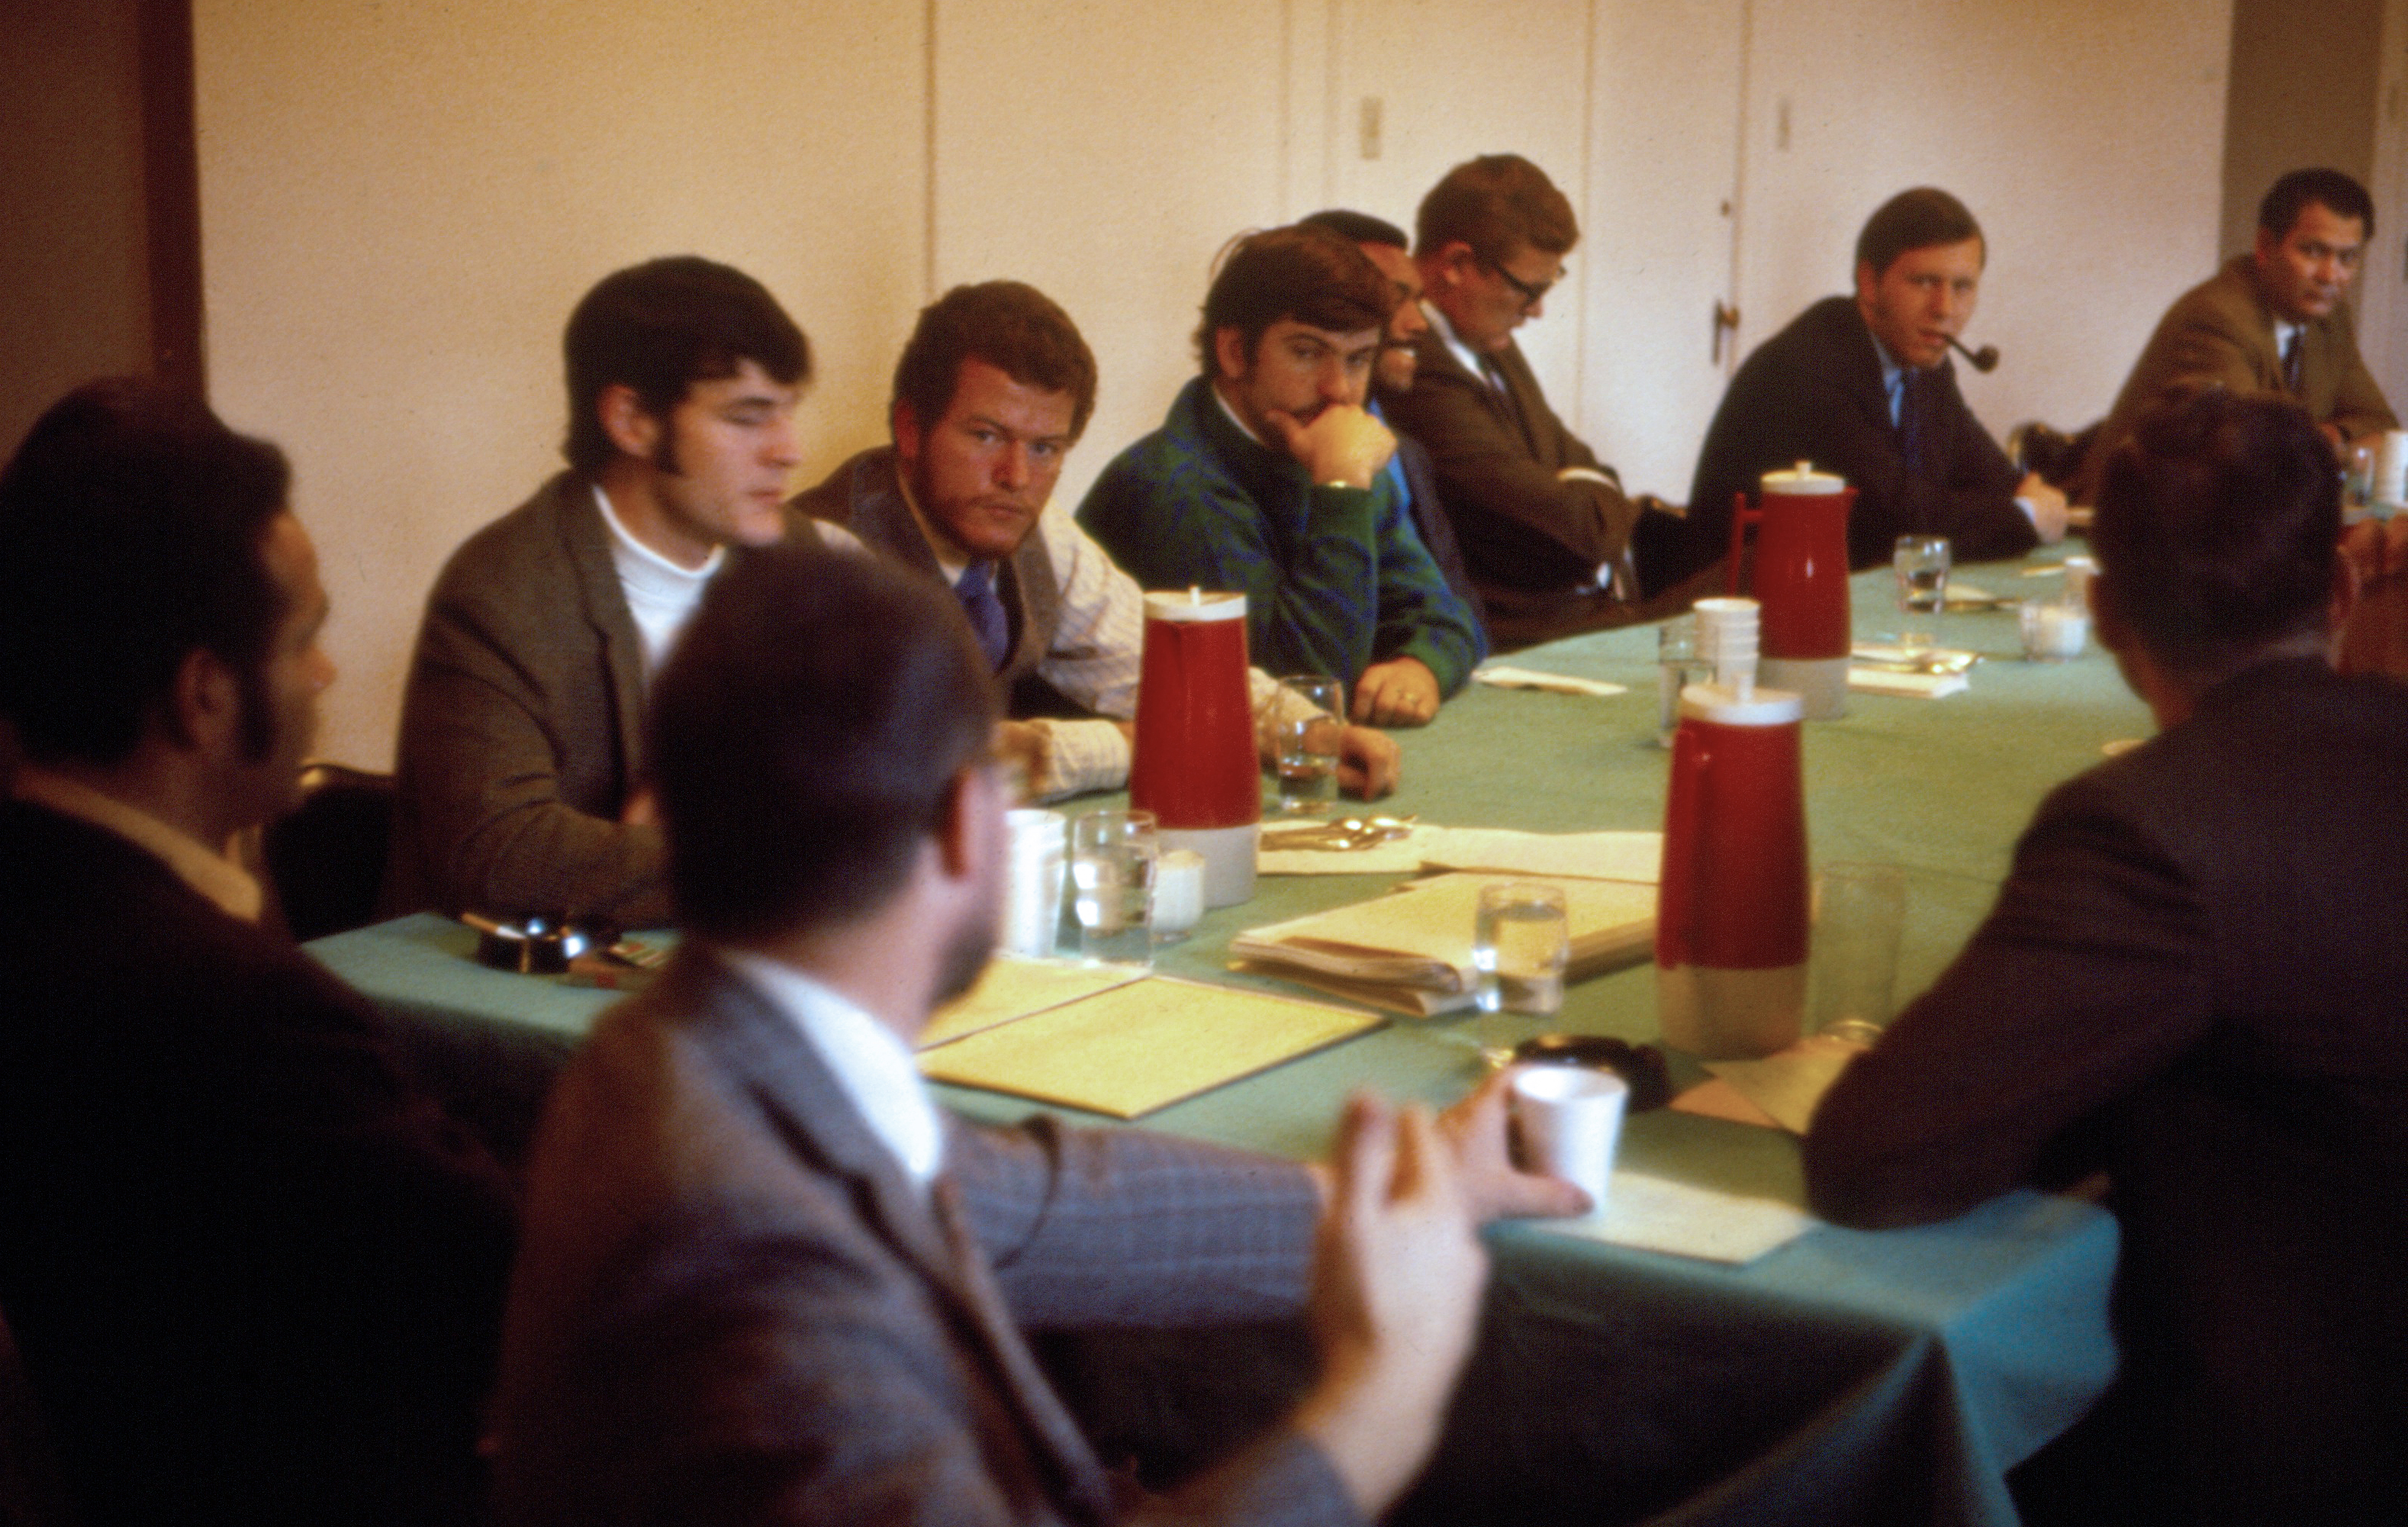 A meeting of the students and faculty of MEDEX in 1969. Dr. Richard Smith is to the far left. John Betz is at the right with a pipe.